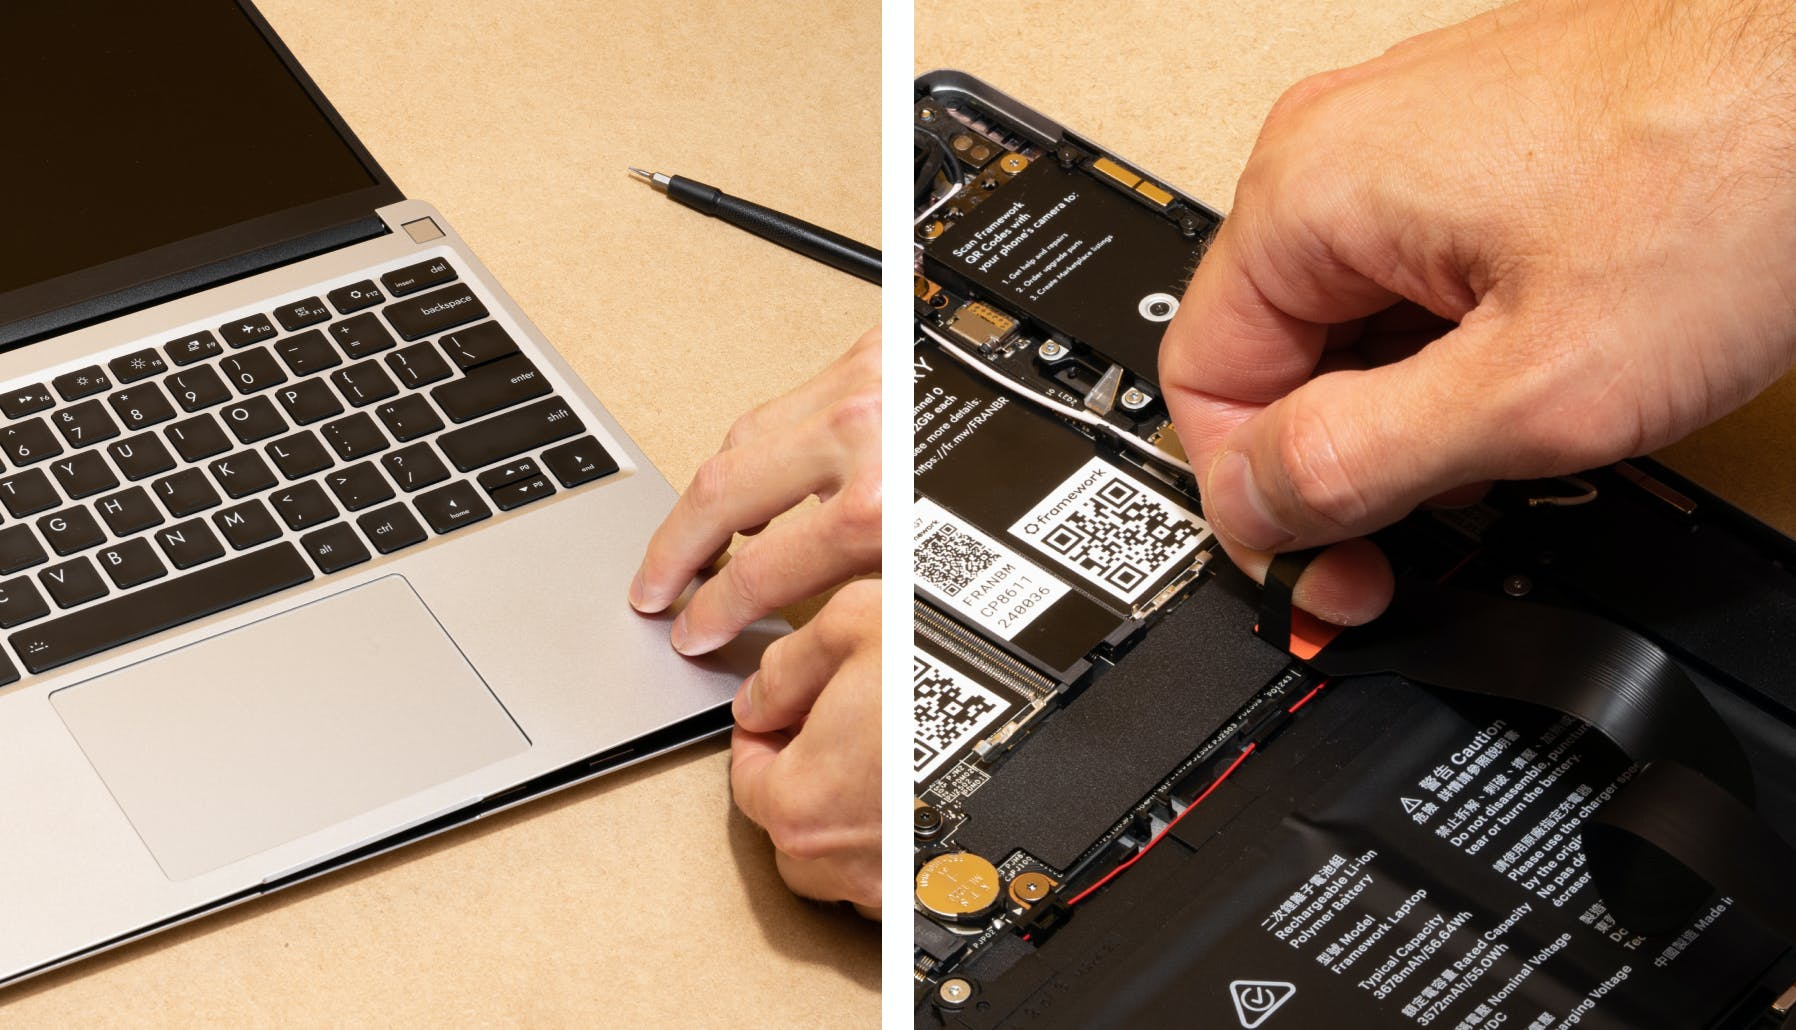 removing the top input cover and pulling the tab off that's inside the laptop